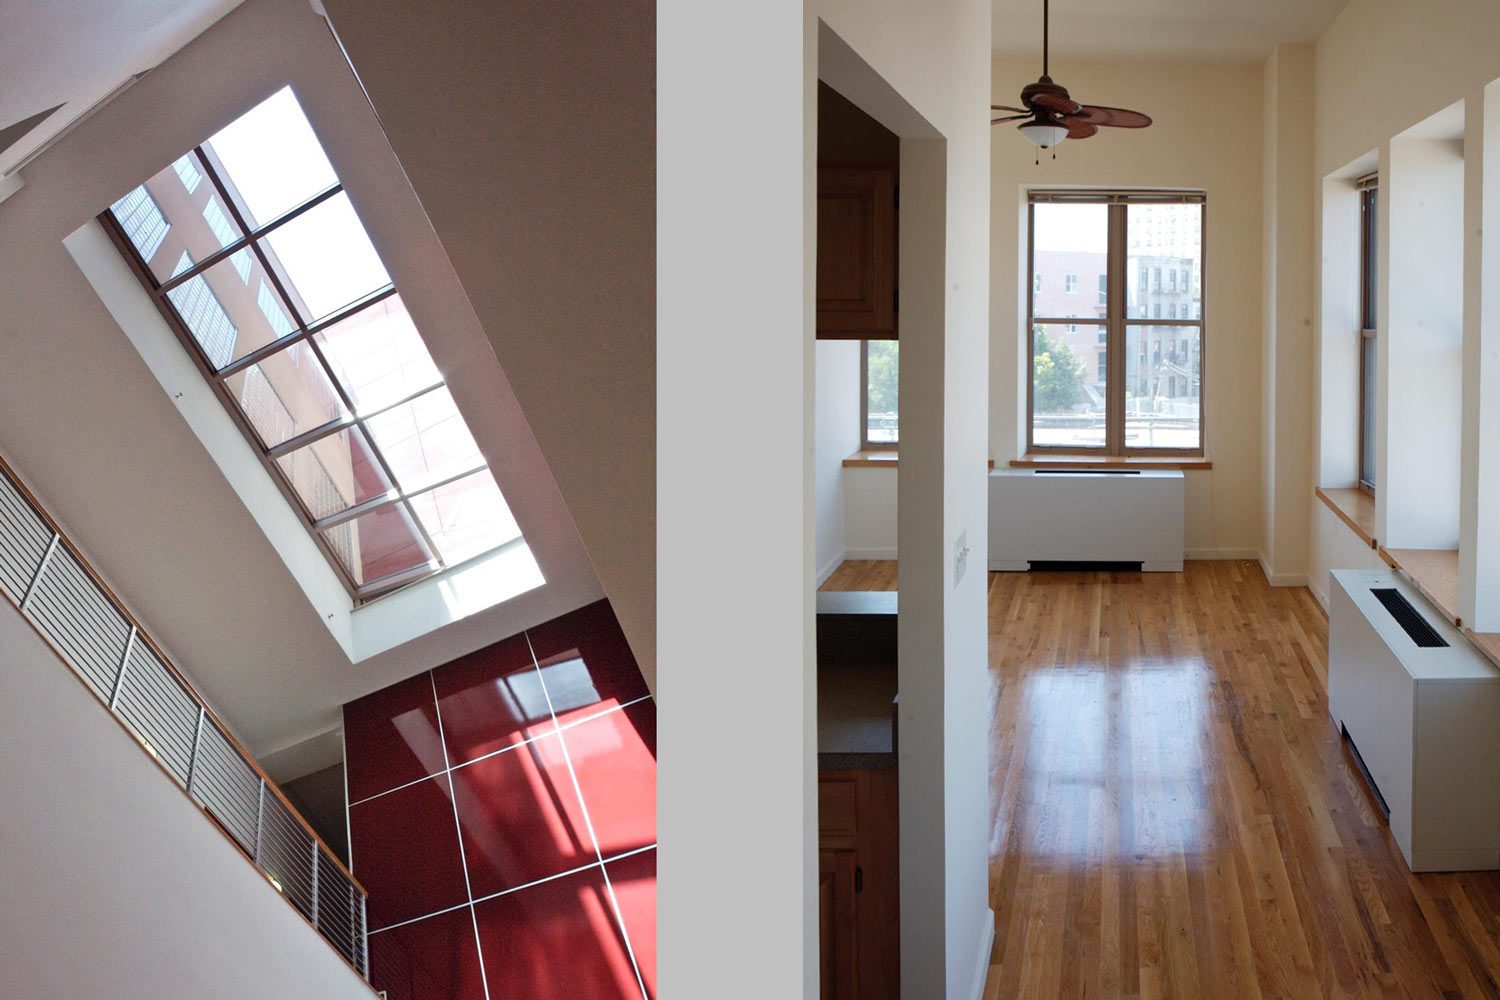 The project provides 99 units of affordable and supportive housing for low-income and formerly homeless individuals.